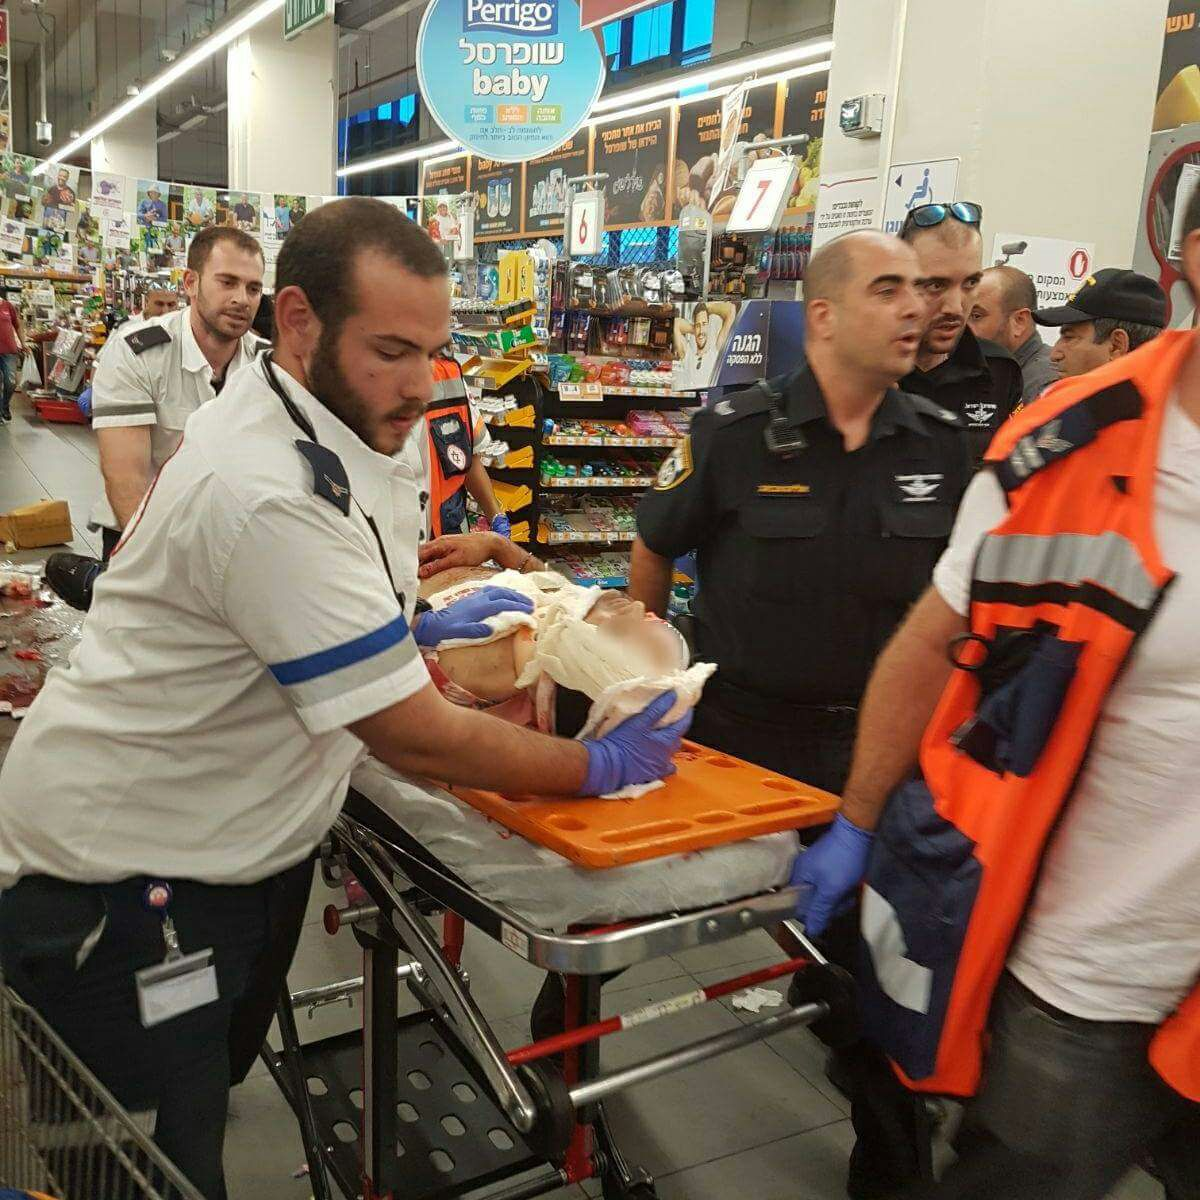 Palestinian stabs Israeli in supermarket attack